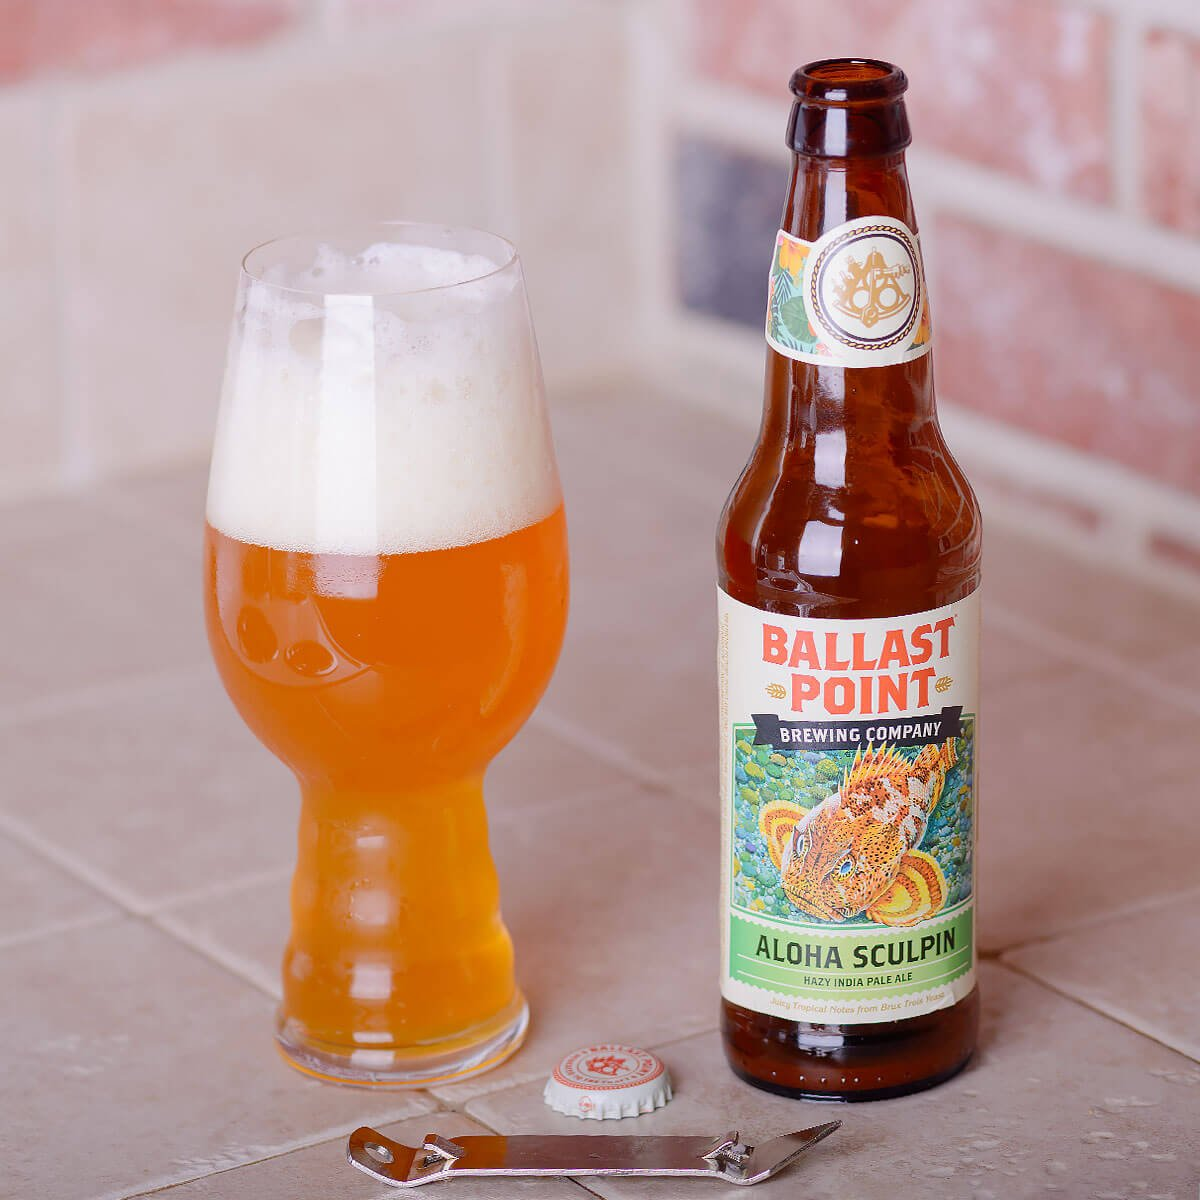 Aloha Sculpin, an American IPA by Ballast Point Brewing Company